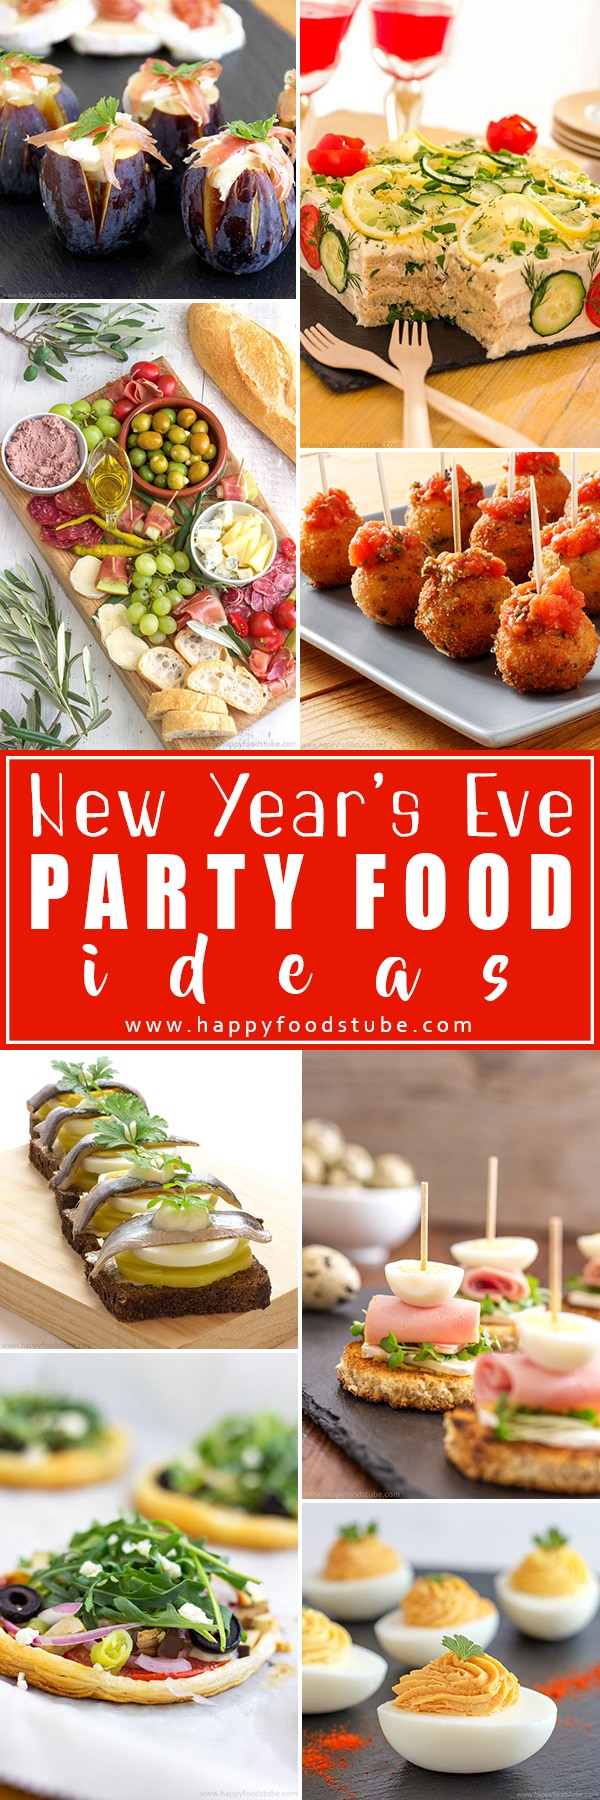 Looking for New Years Eve party food ideas? Look no more! Ring in the New Year with these simple party recipes. We love them and hope you will too. #appetizers #newyearseve #partyfood #fingerfood #bitesizefood #recipes #partyrecipes #canapes